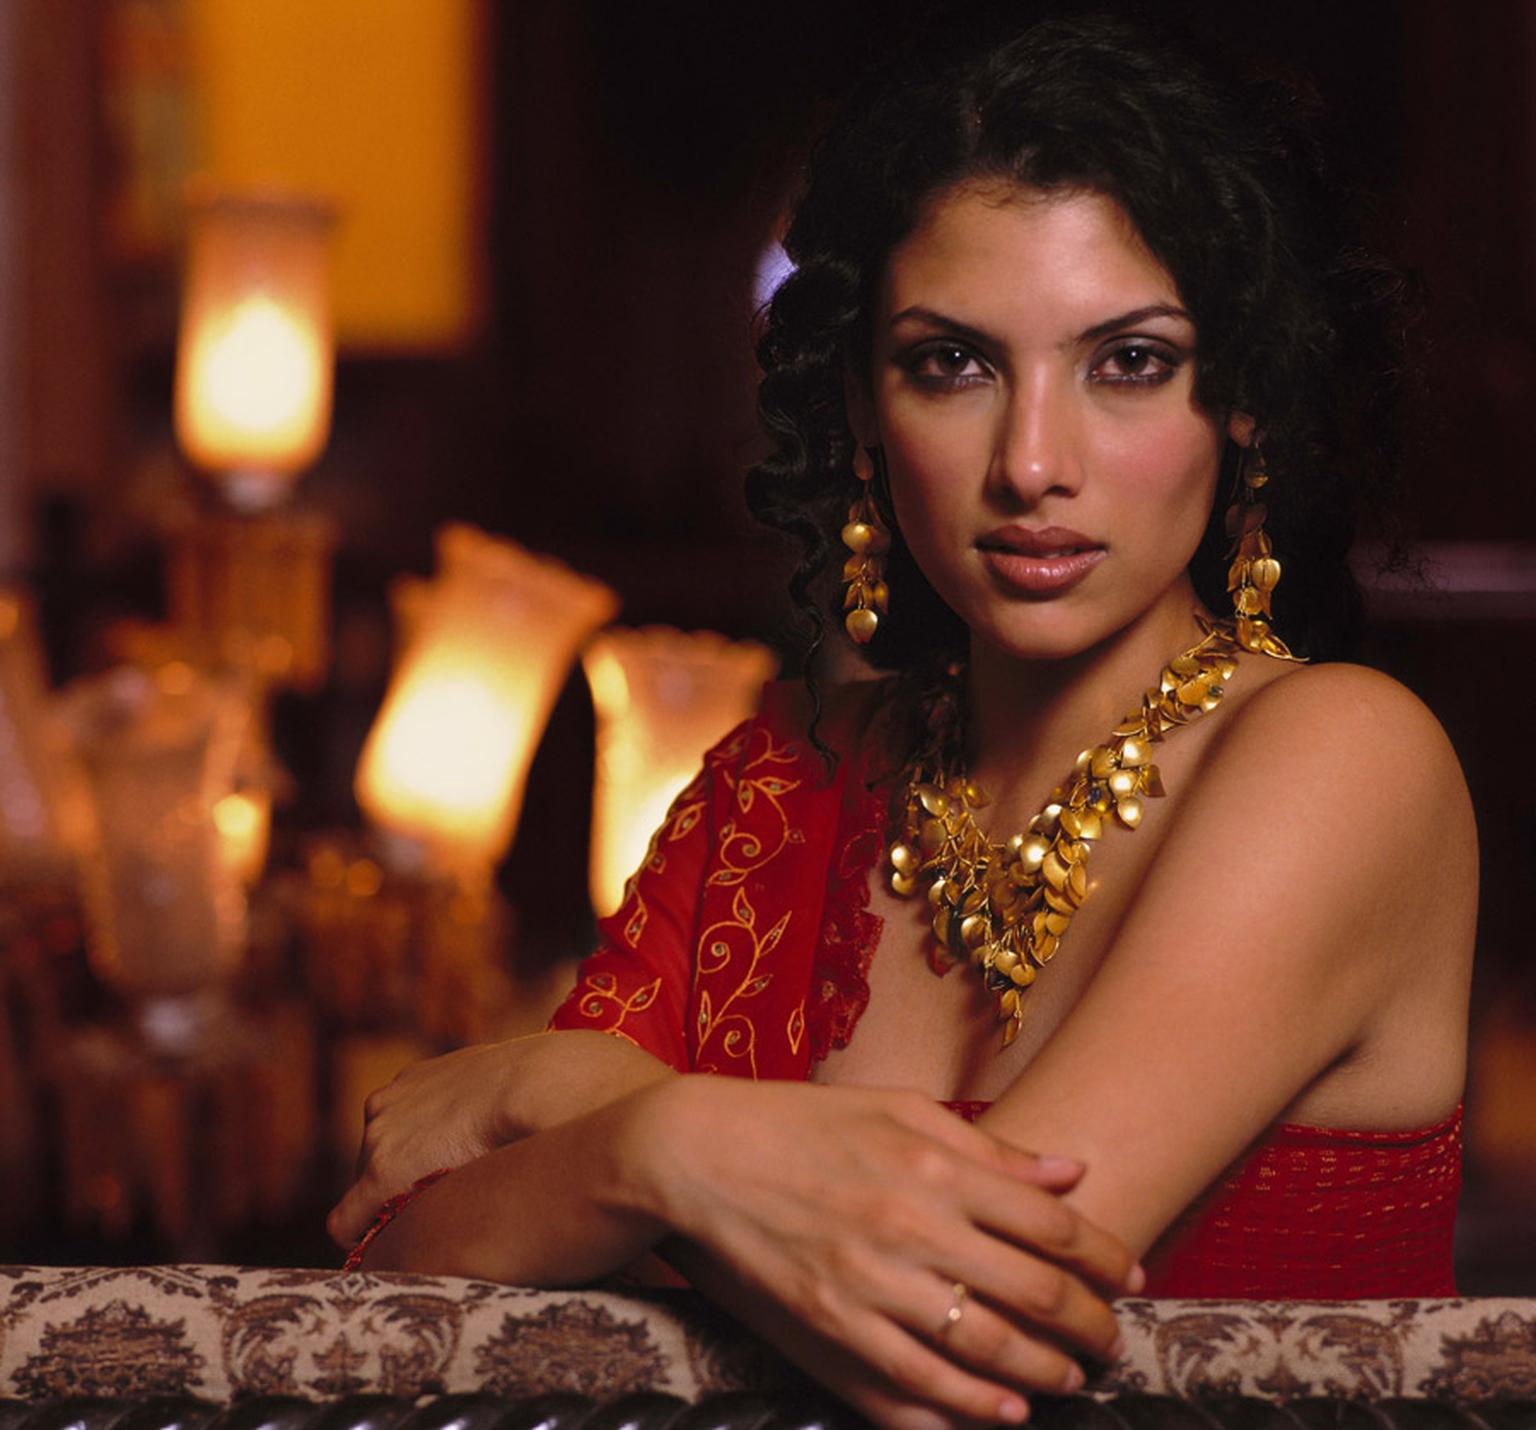 Amrapali-Model-with-Amrapali-jewels-2